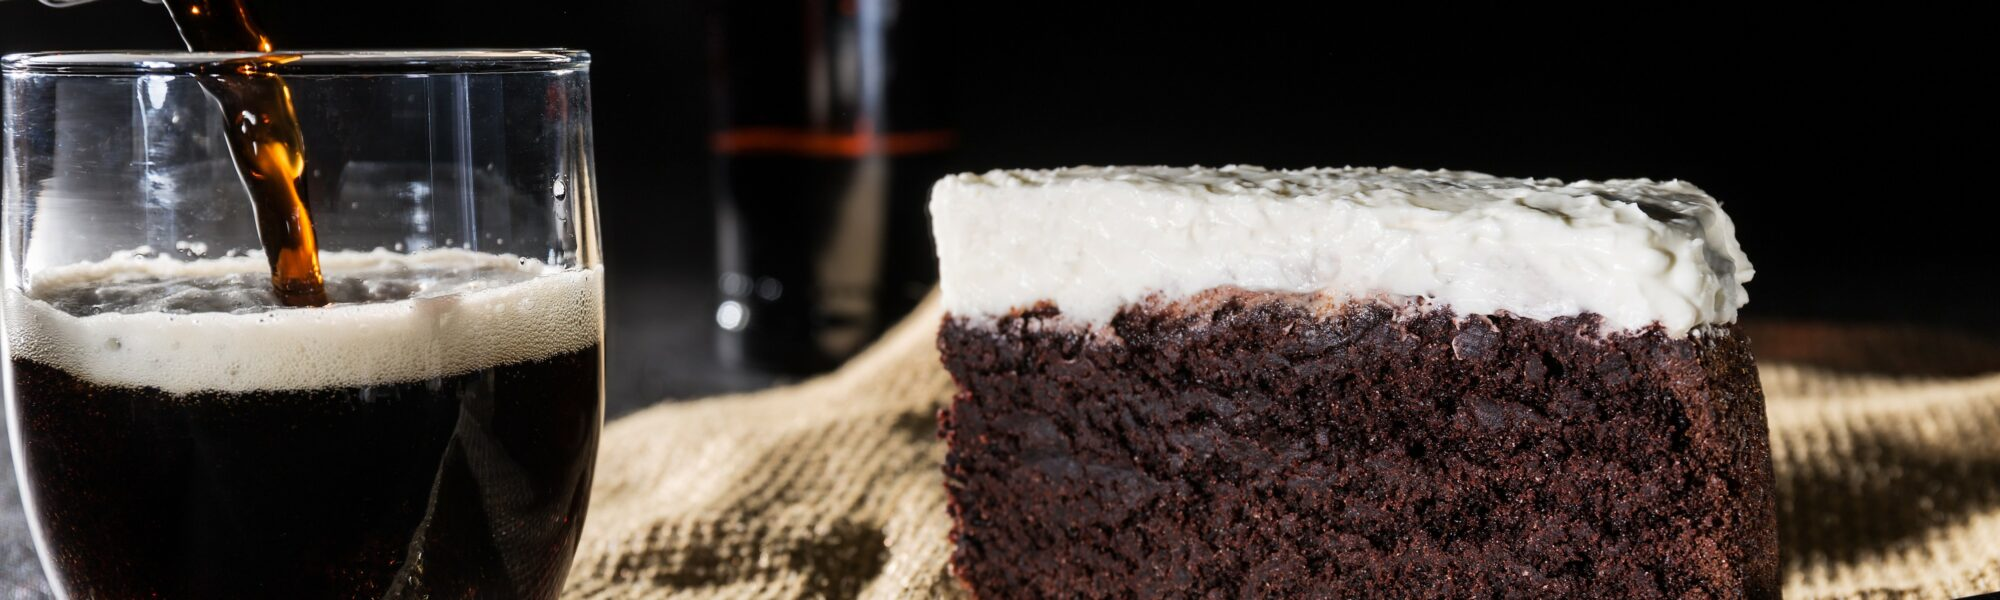 Le Guinness chocolate cake - Shutterstock